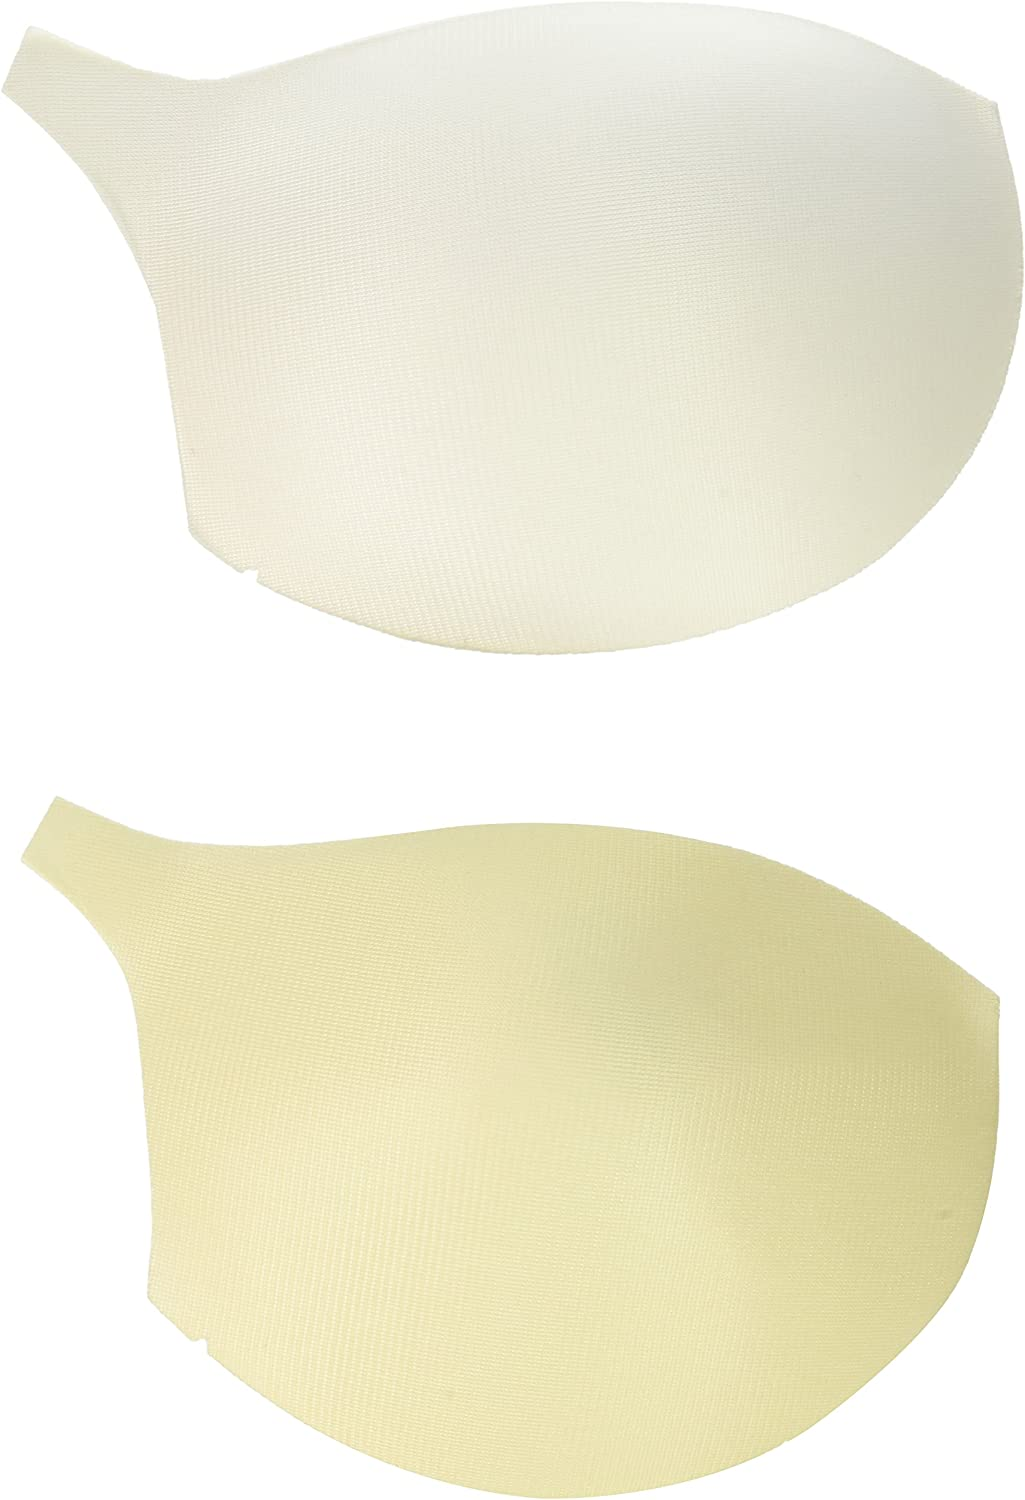 Dritz 53068-AB Soft Molded Bra Cups, A/B, Reversible White